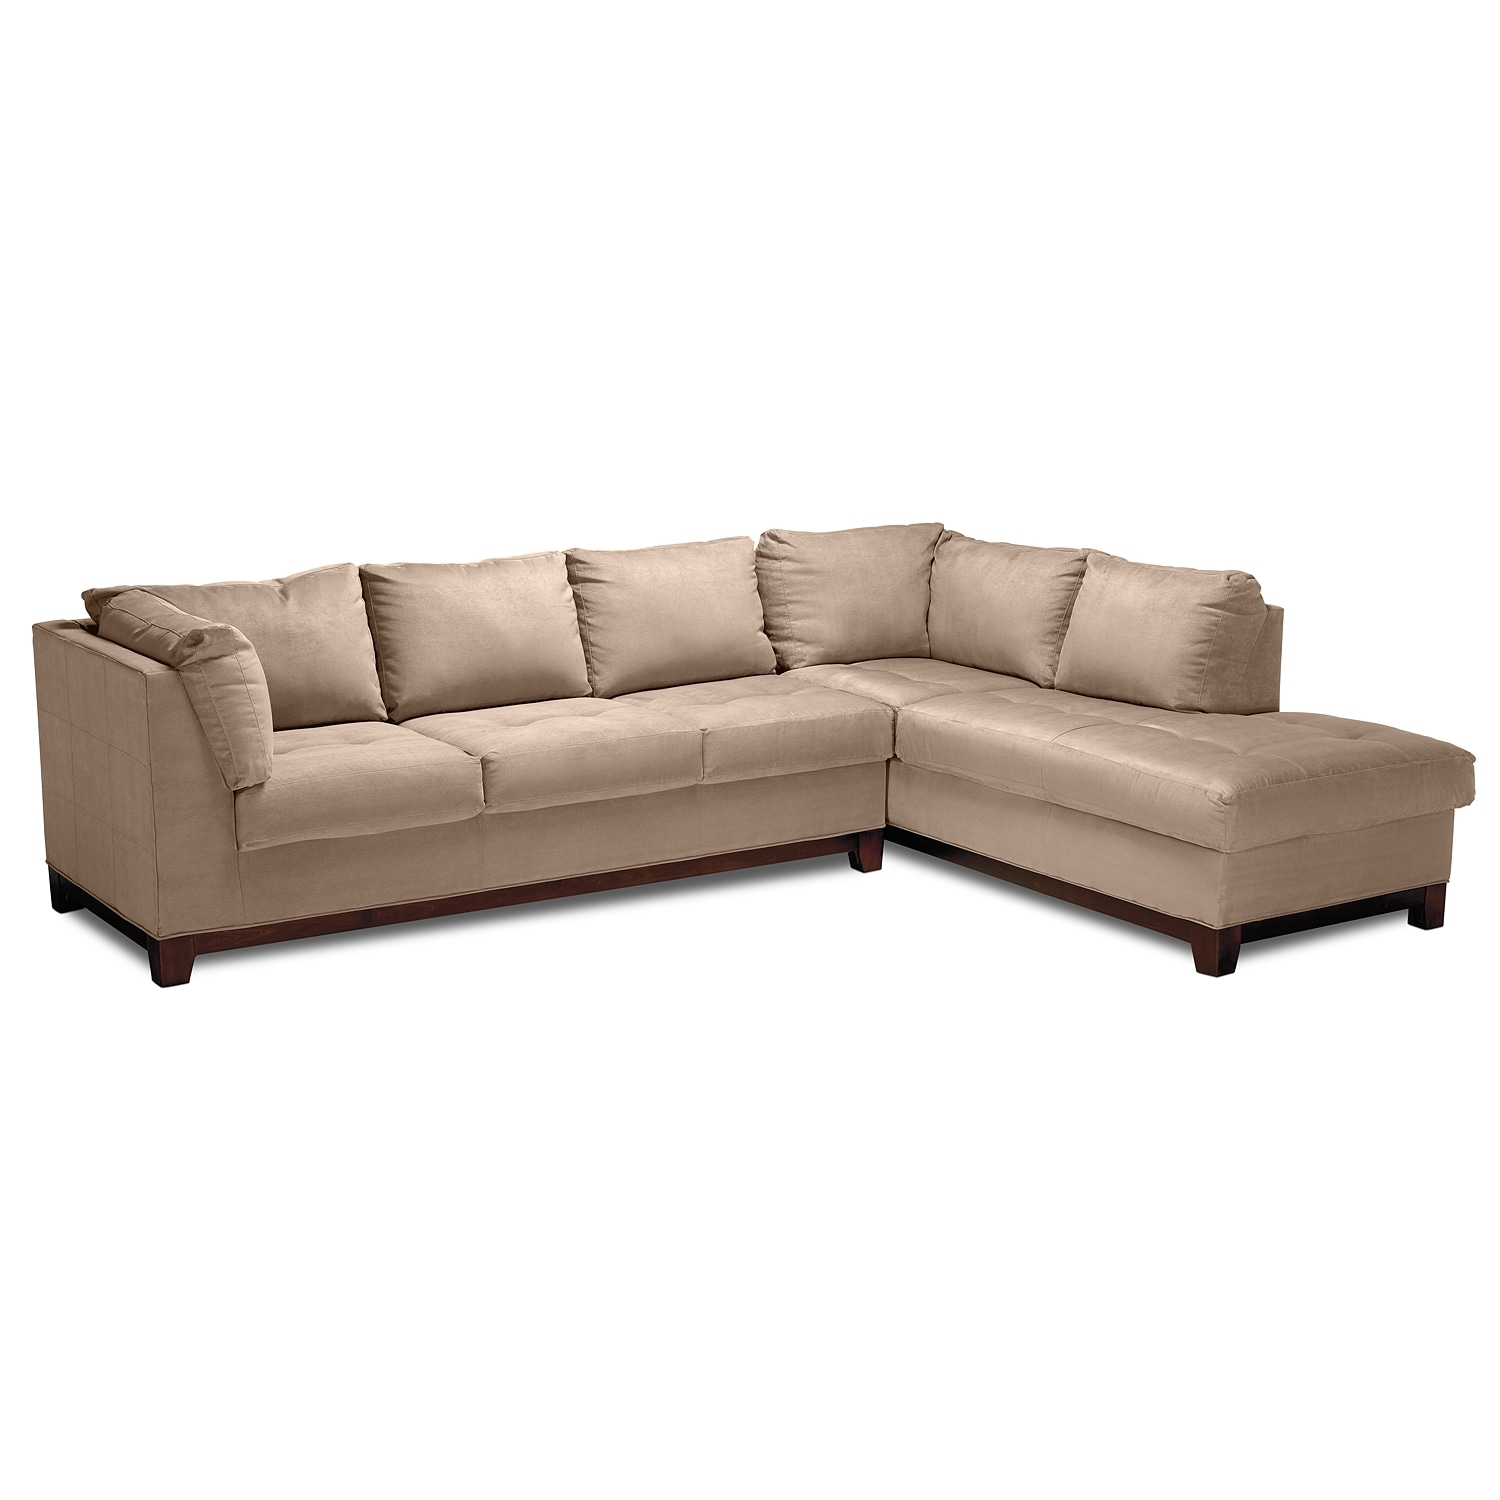 Soho ii 2 pc sectional american signature furniture for American signature couch